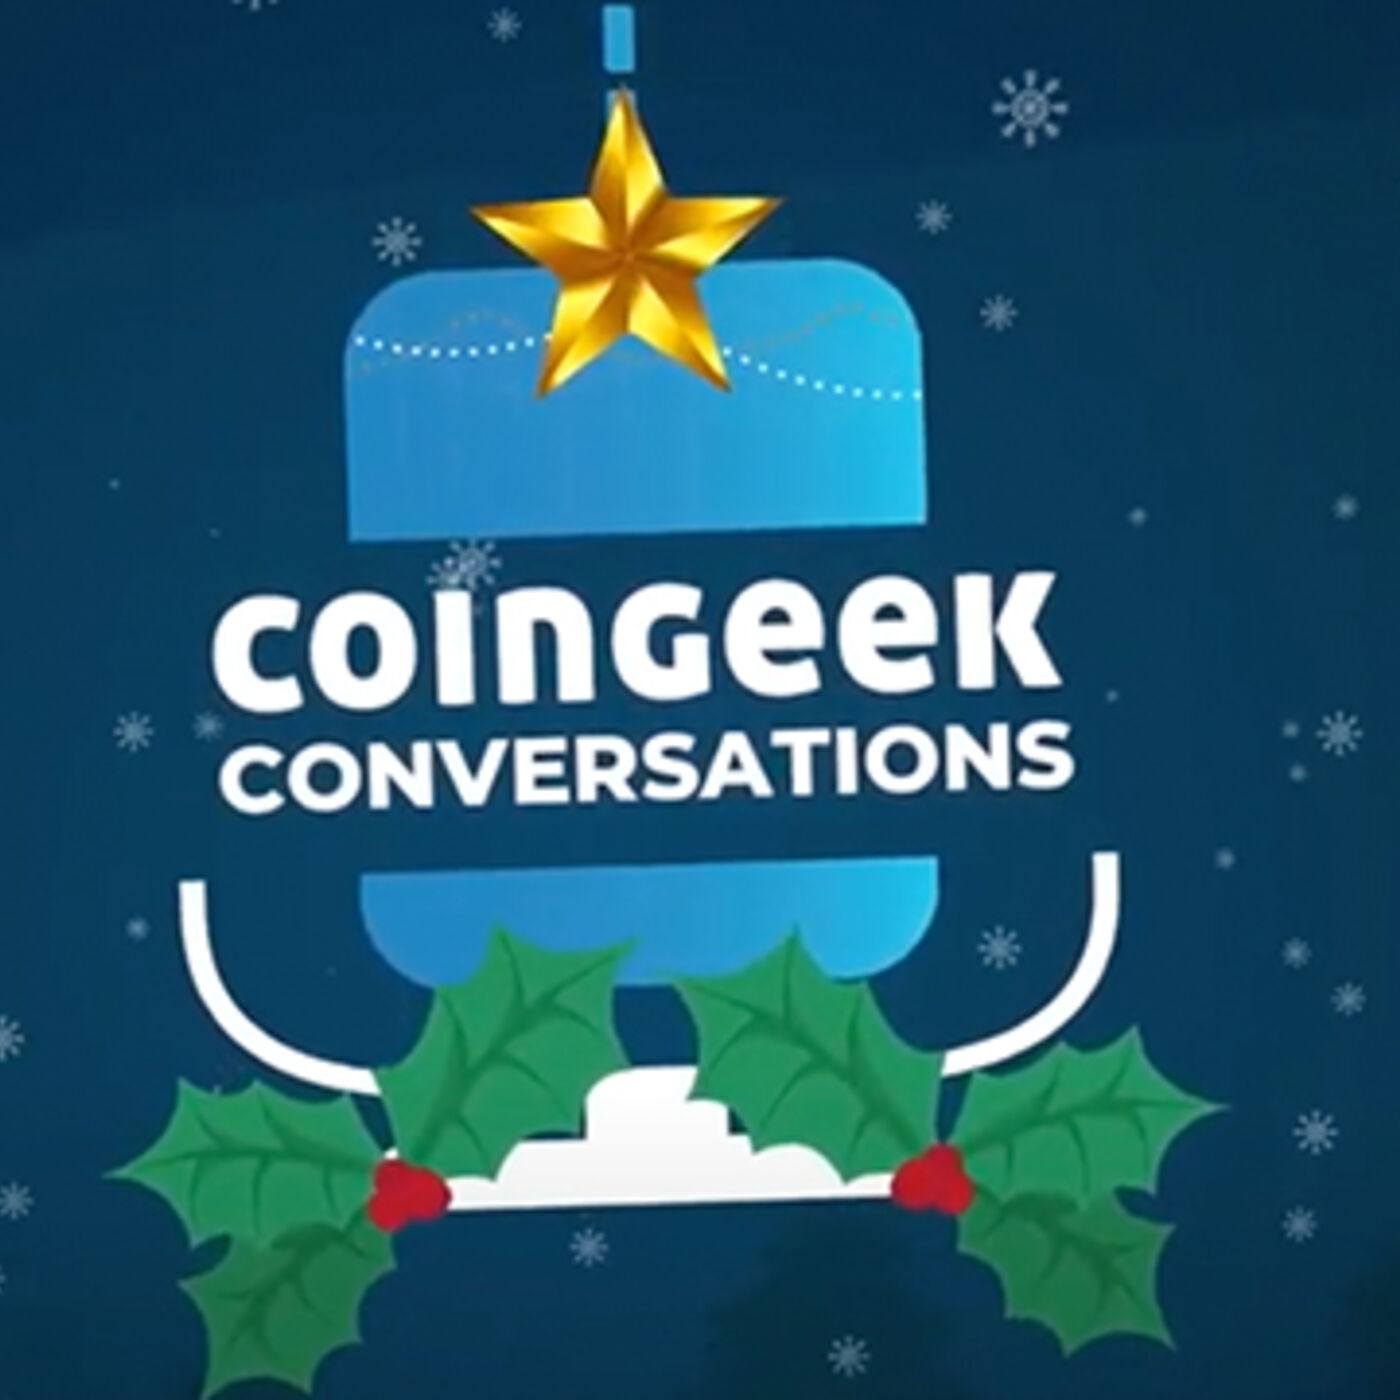 CoinGeek Conversations: Goodbye 2020!